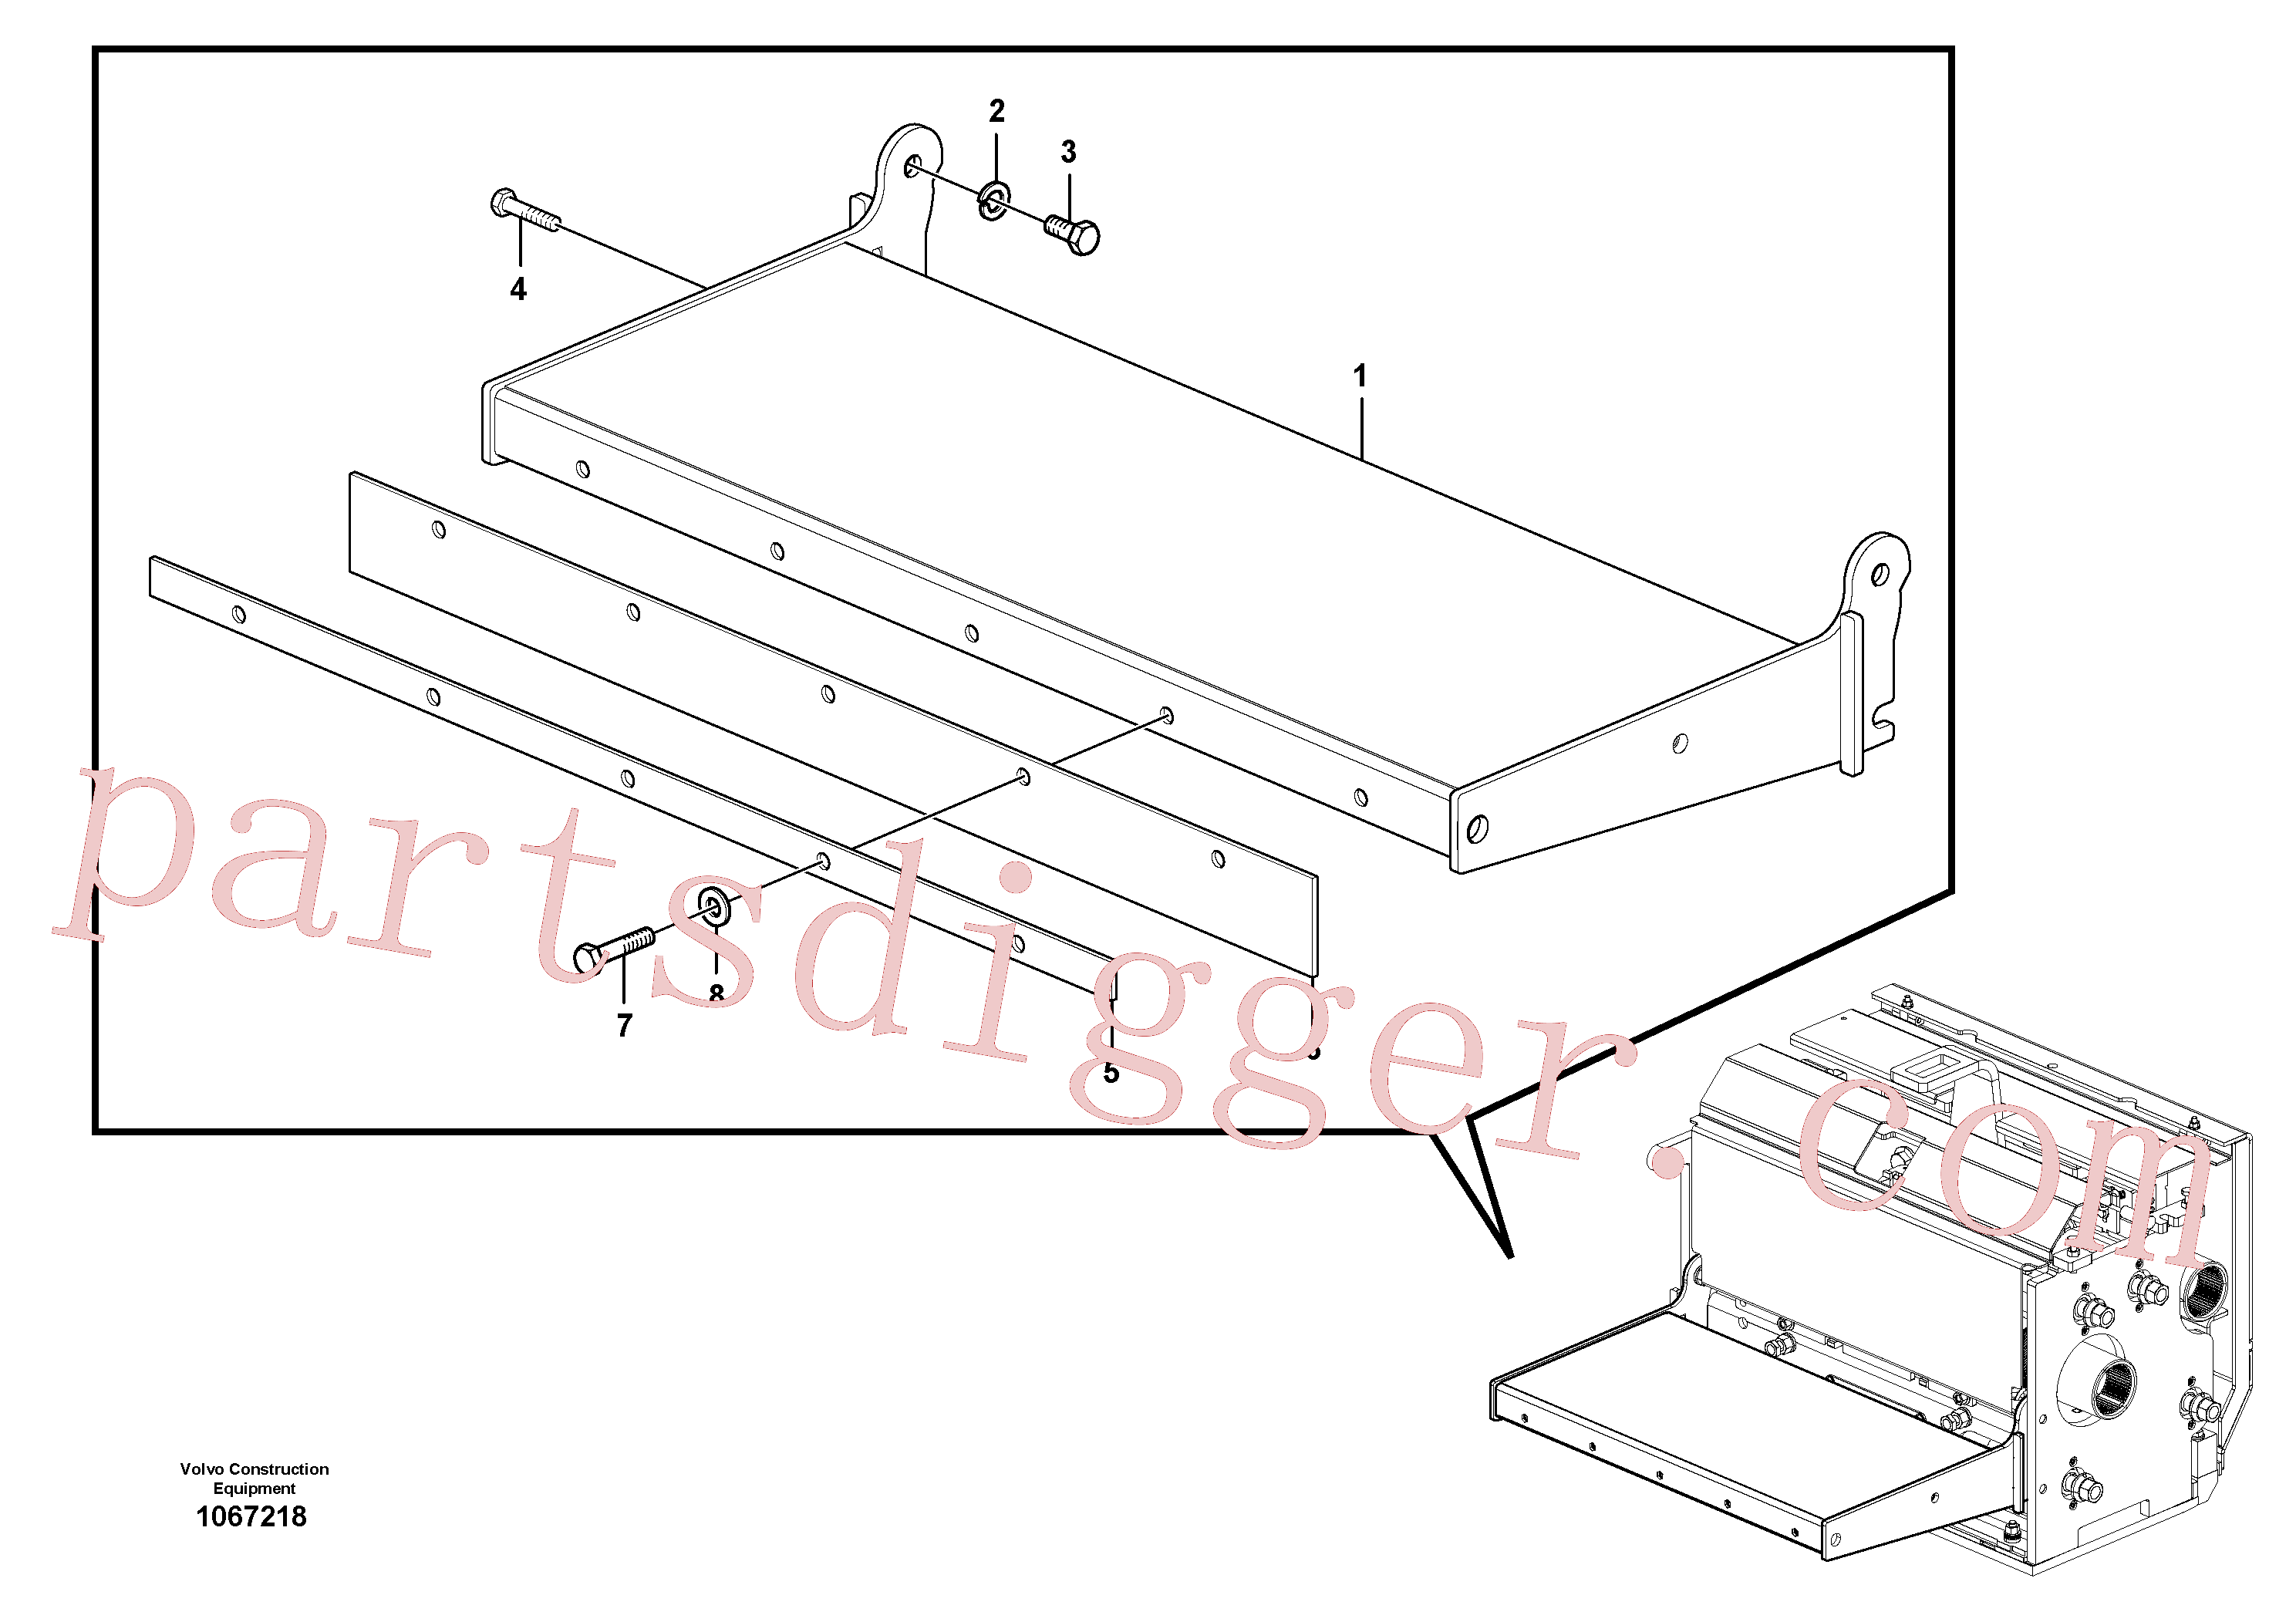 RM96715081 for Volvo Catwalk(1067218 assembly)